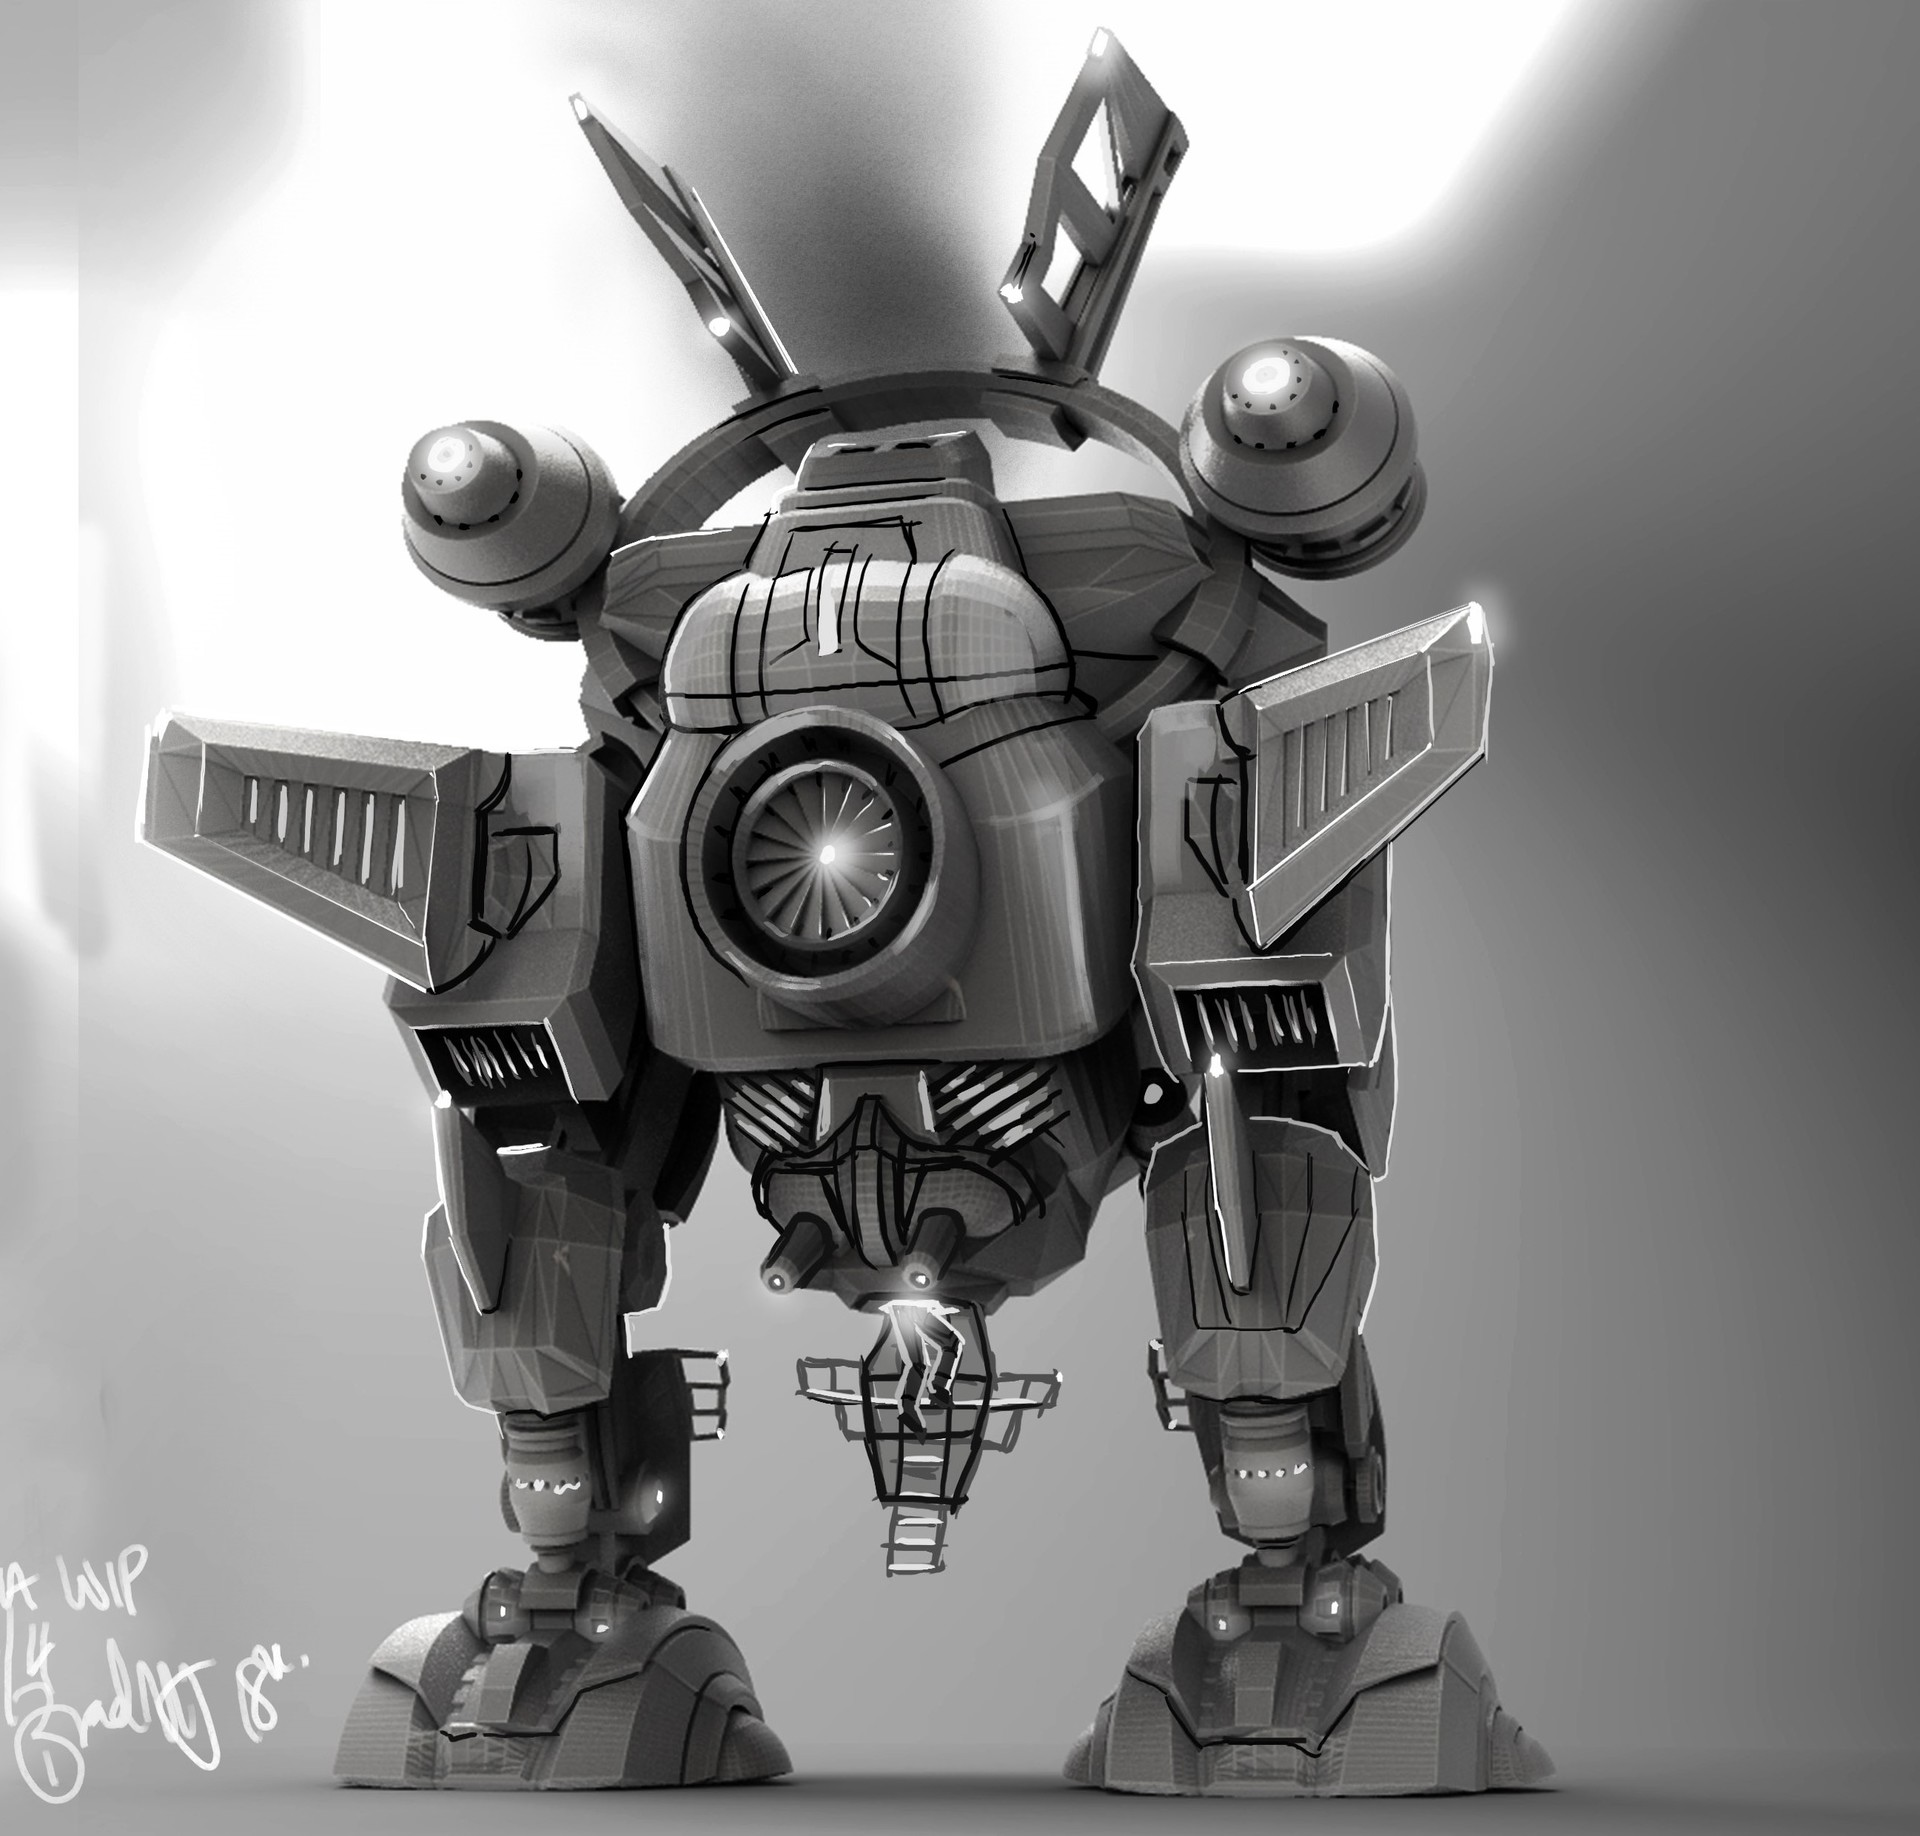 Bradley morgan johnson mecha wip 23rd april bk